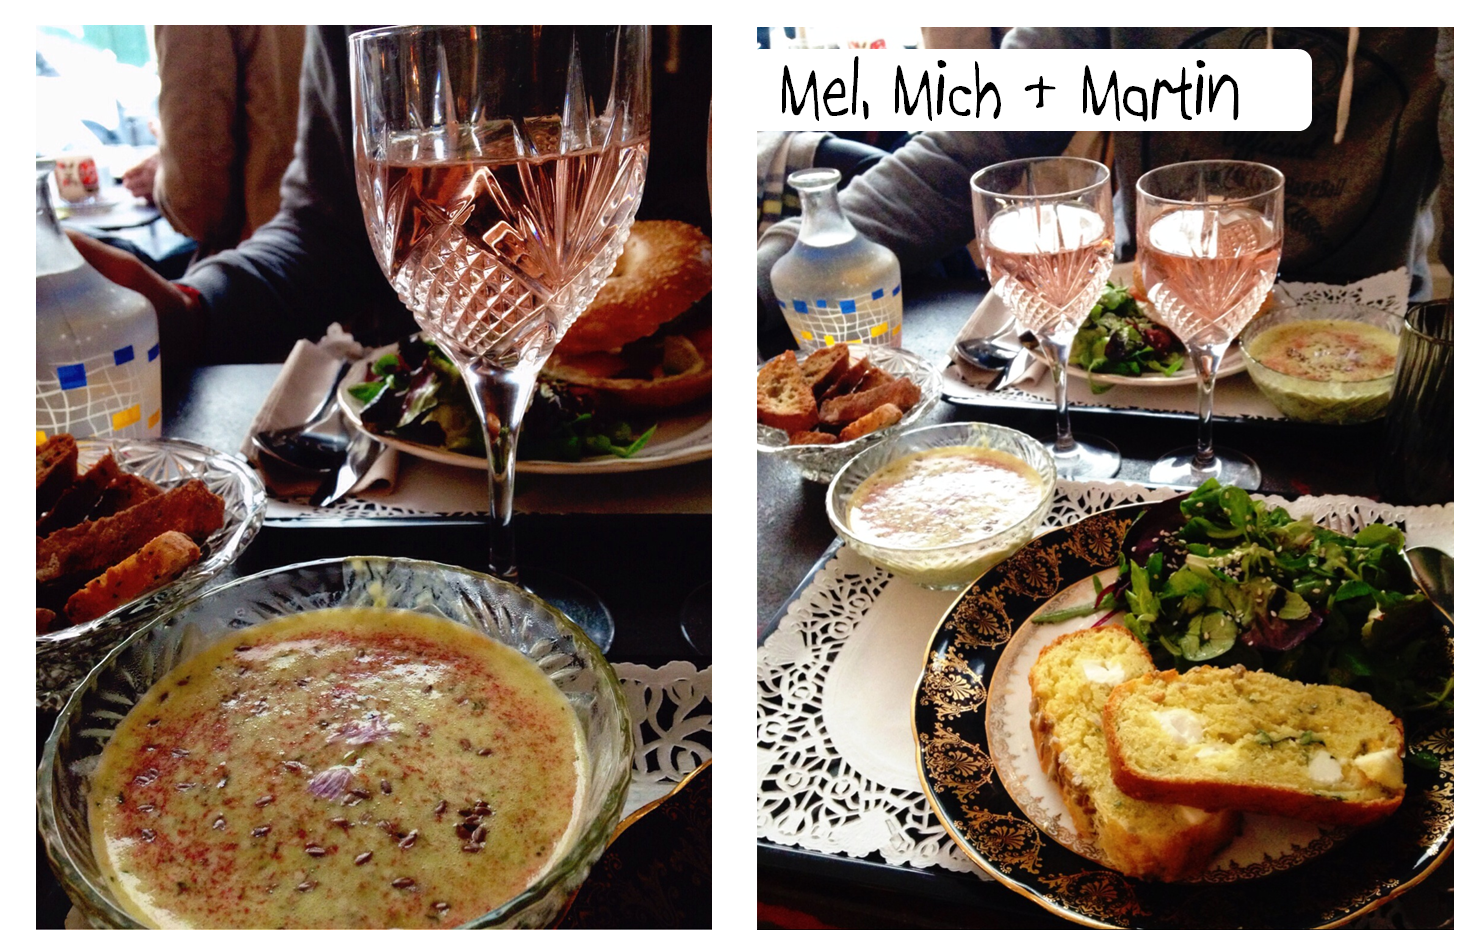 Mel Mich & Martin Restaurant Homemade Fait Maison Paris Miam Home Made